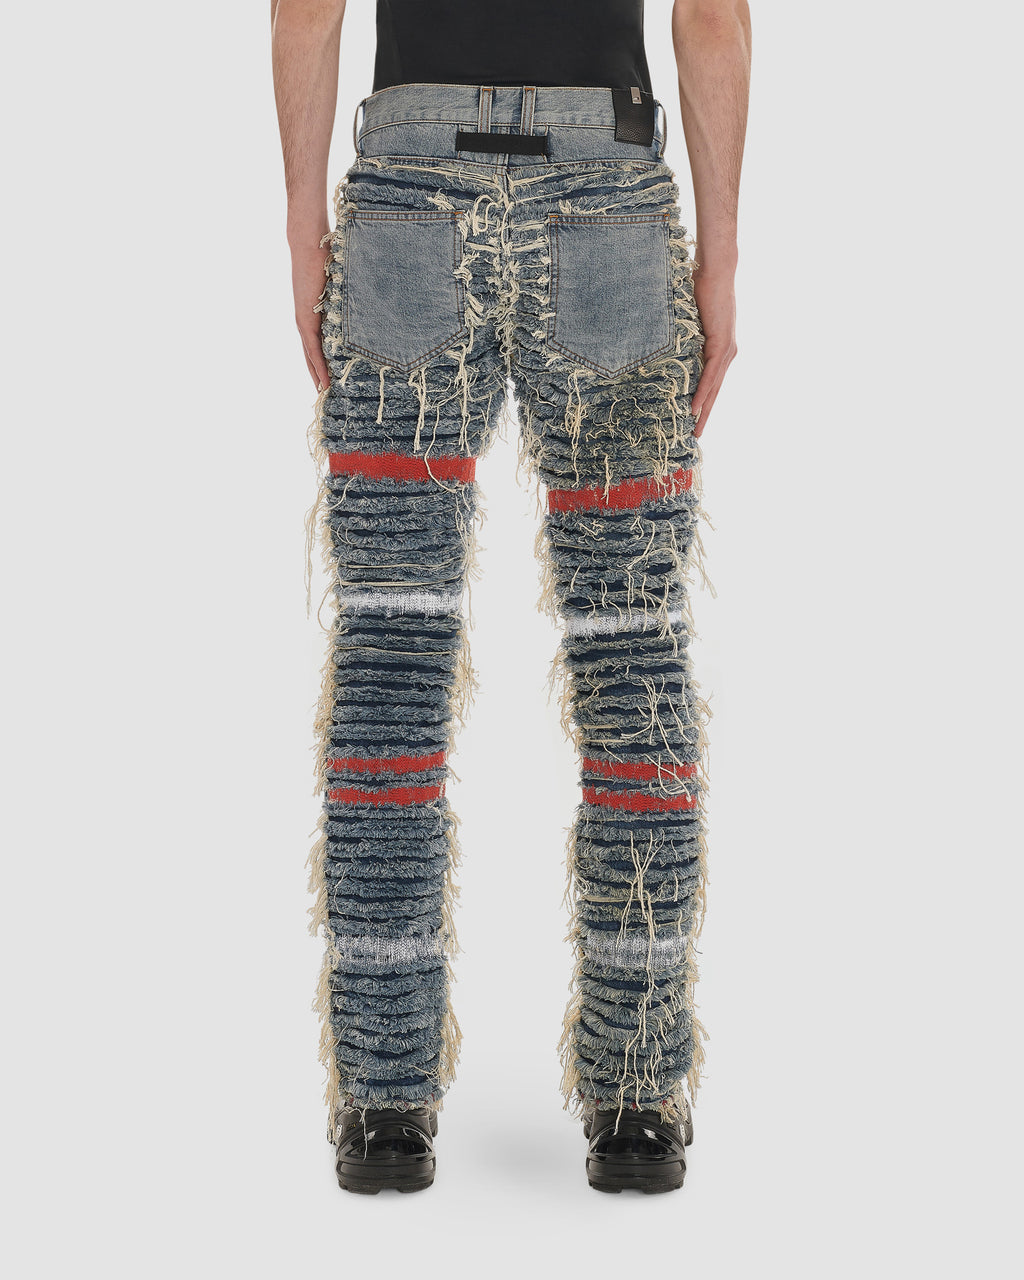 1017 ALYX 9SM | BLACKMEANS SHREDDED DENIM | Pants | BLACKMEANS, Blue, F19